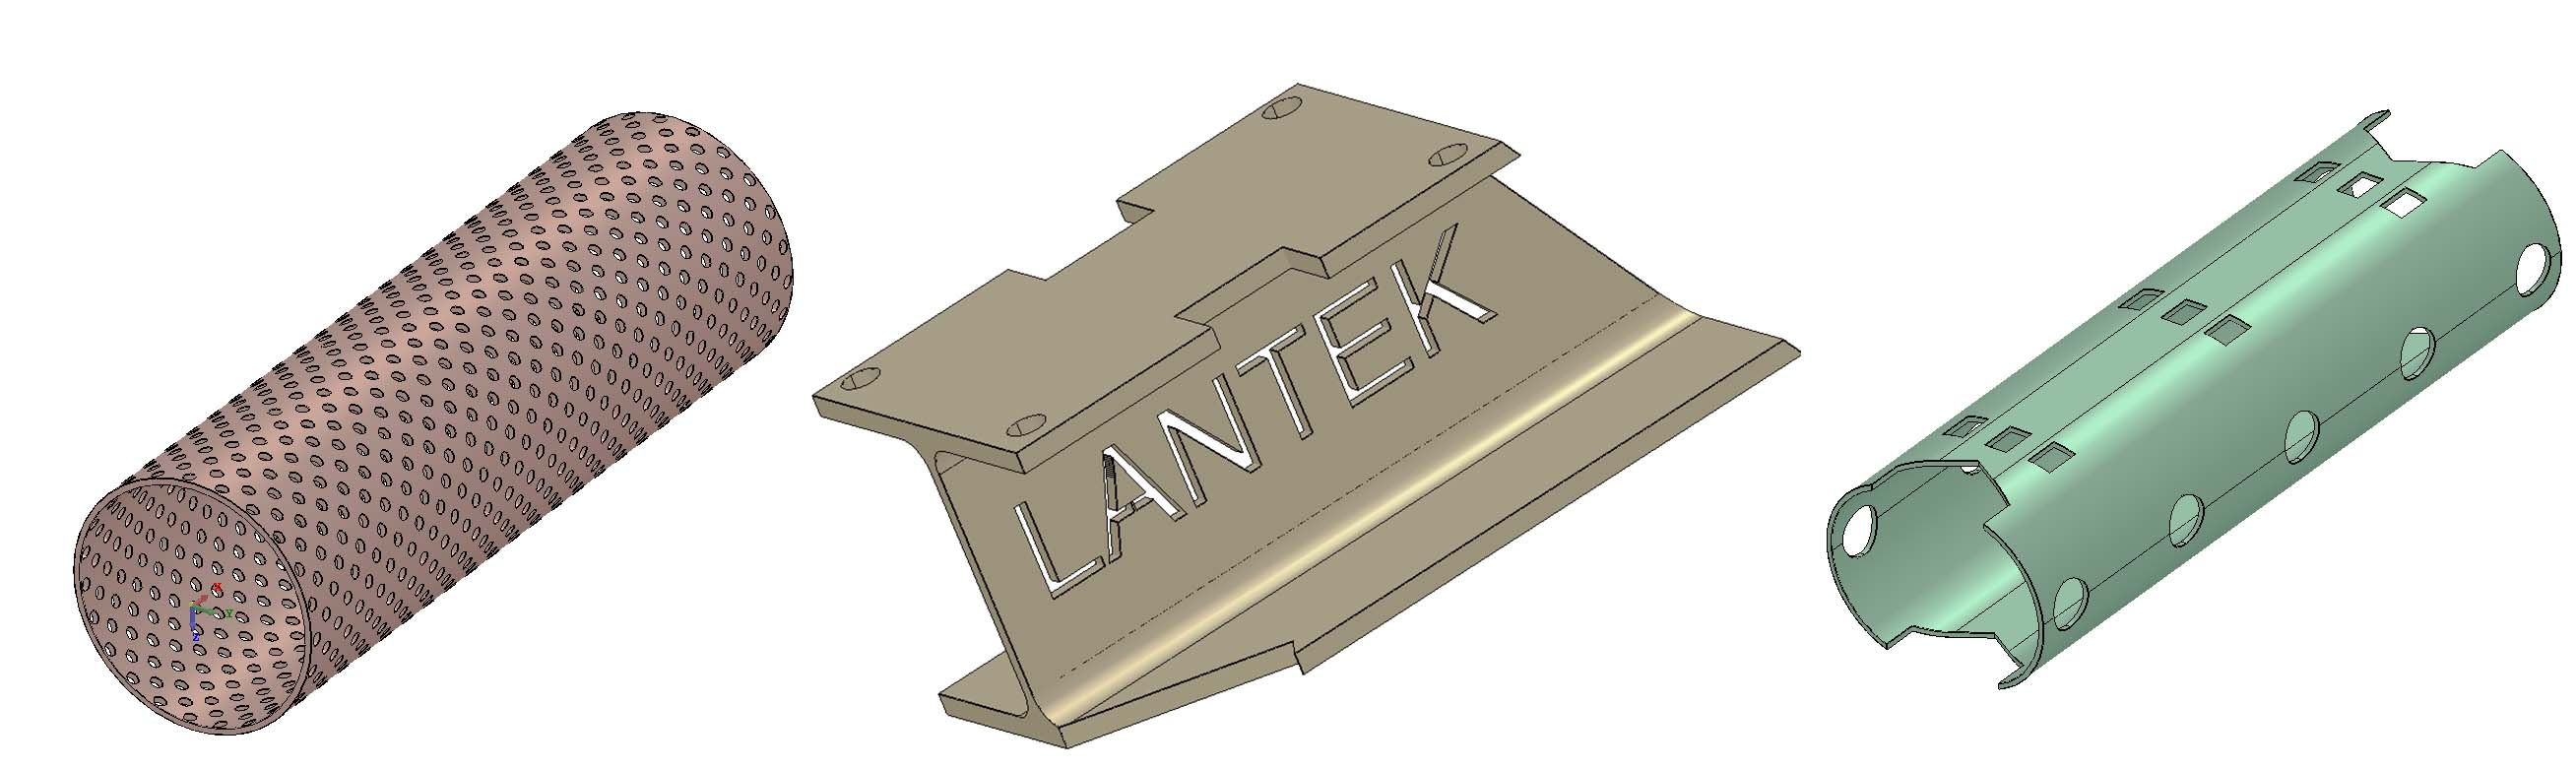 Lantek Flex3d Tubes  - Design options